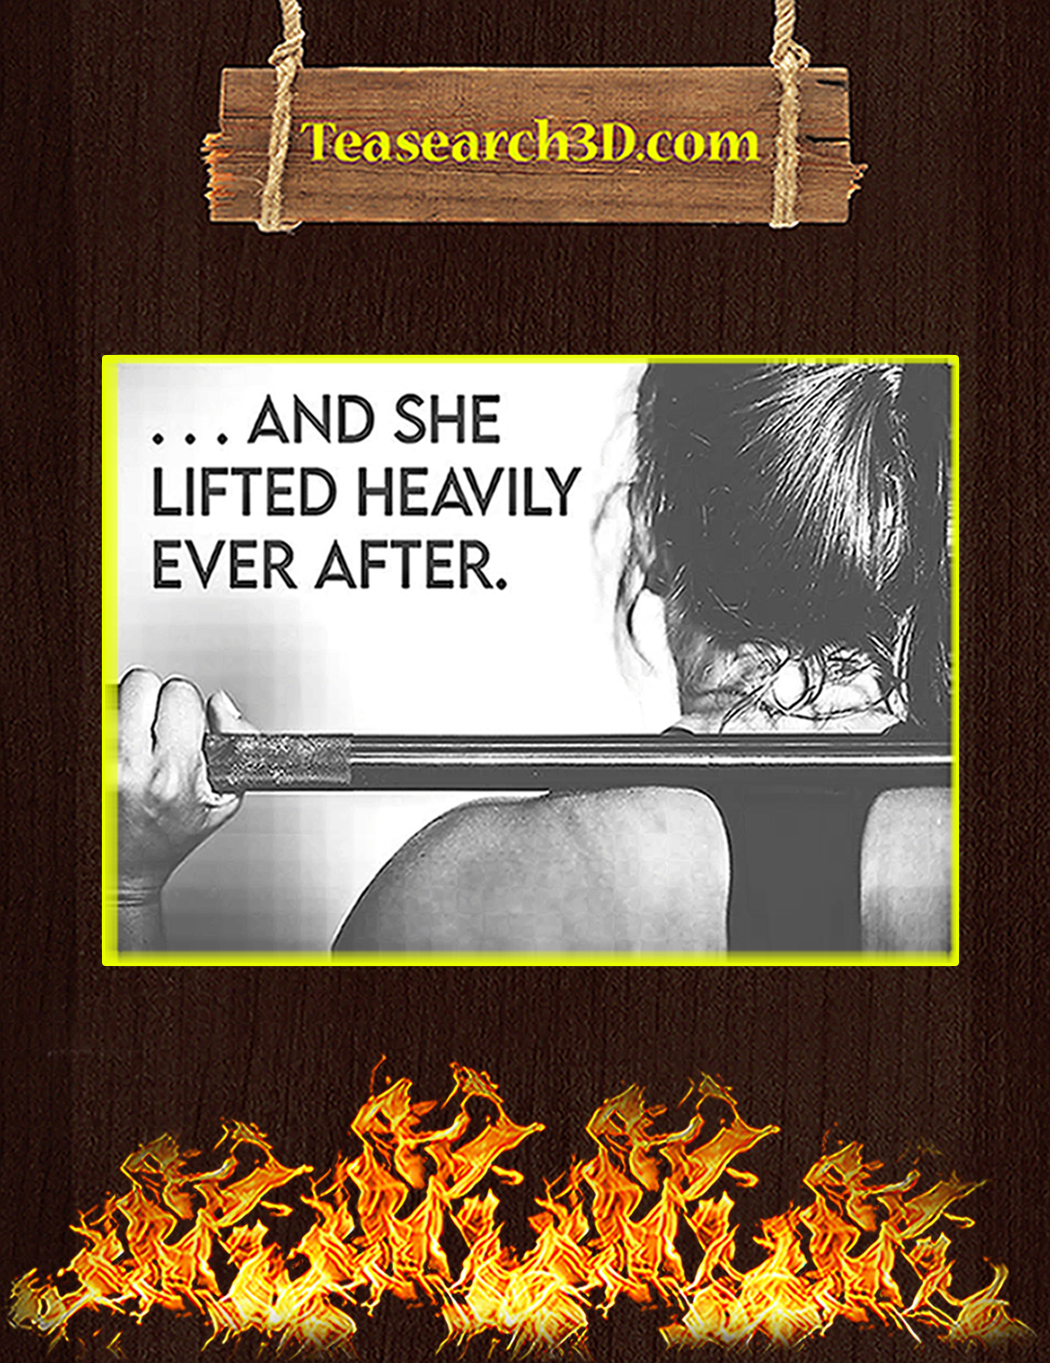 Fitness and she lifted heavily ever after poster A1